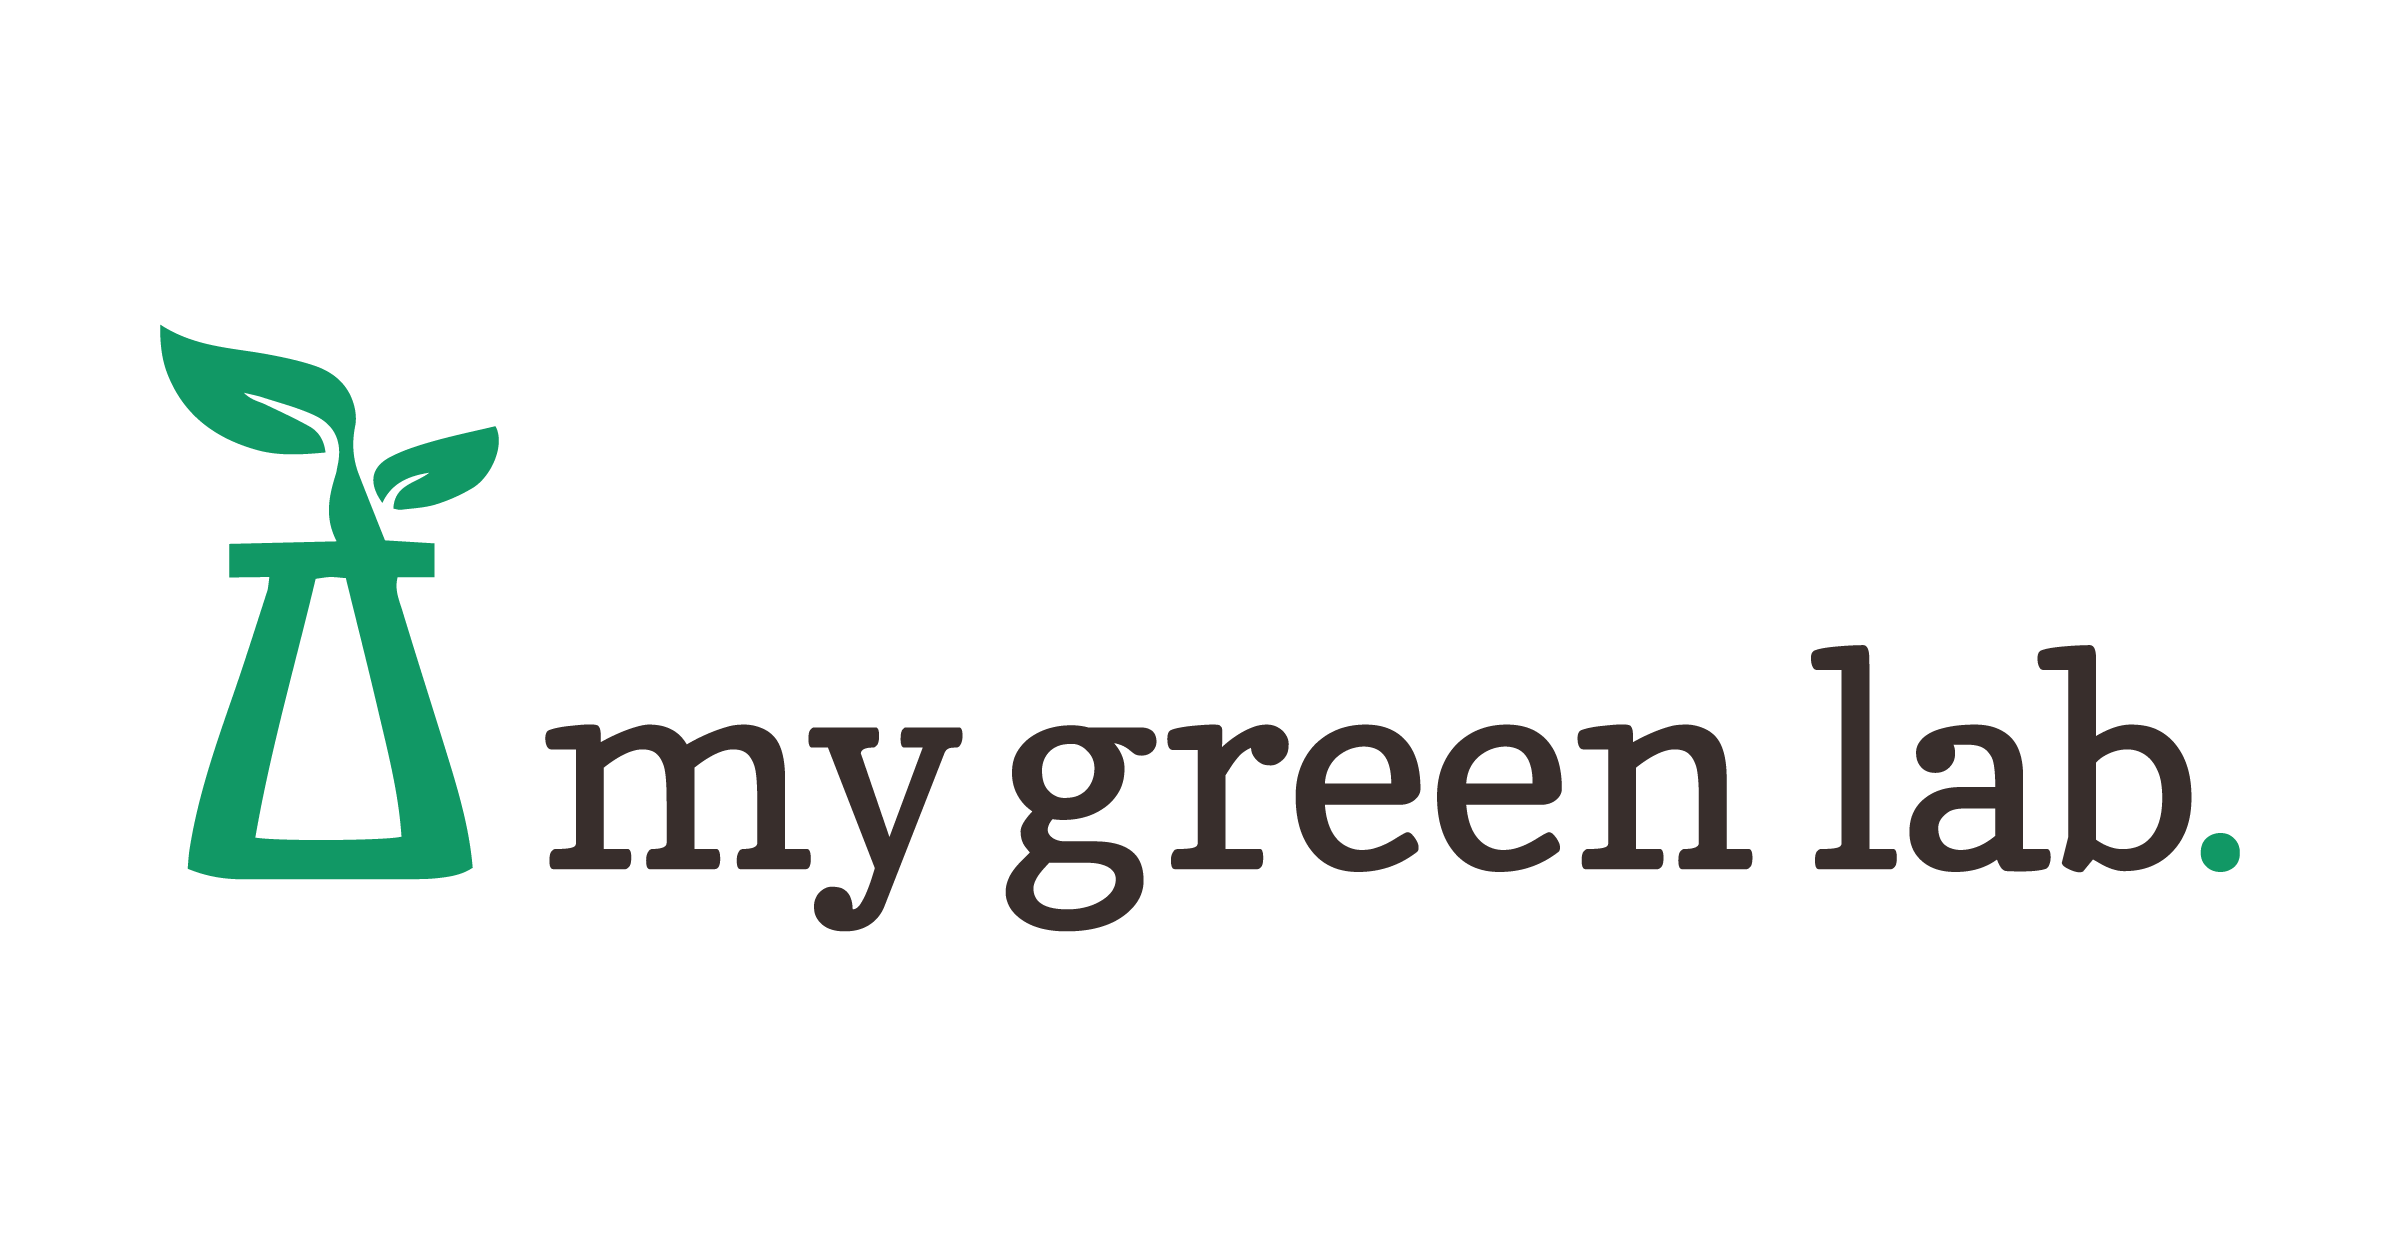 My Green Lab logo